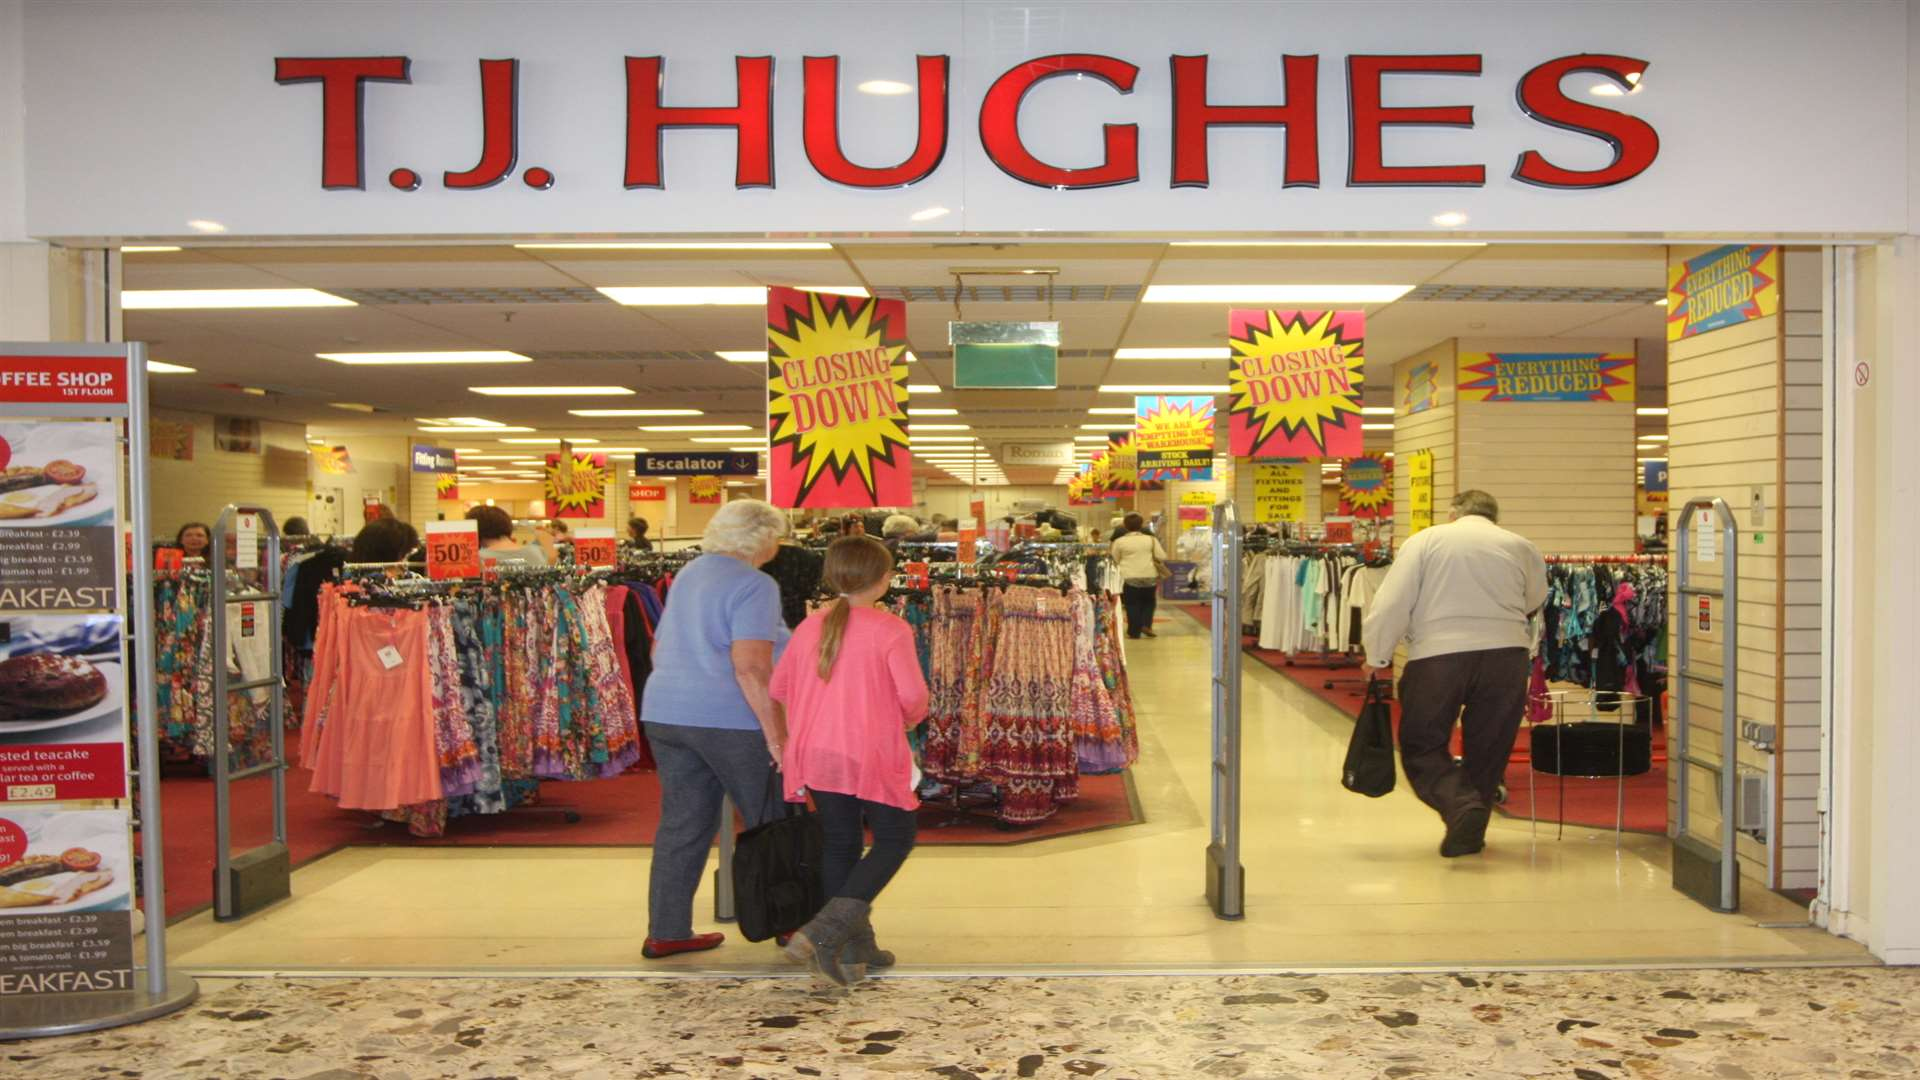 TJ Hughes store in the Mall, Maidstone, just before it closed in 2011